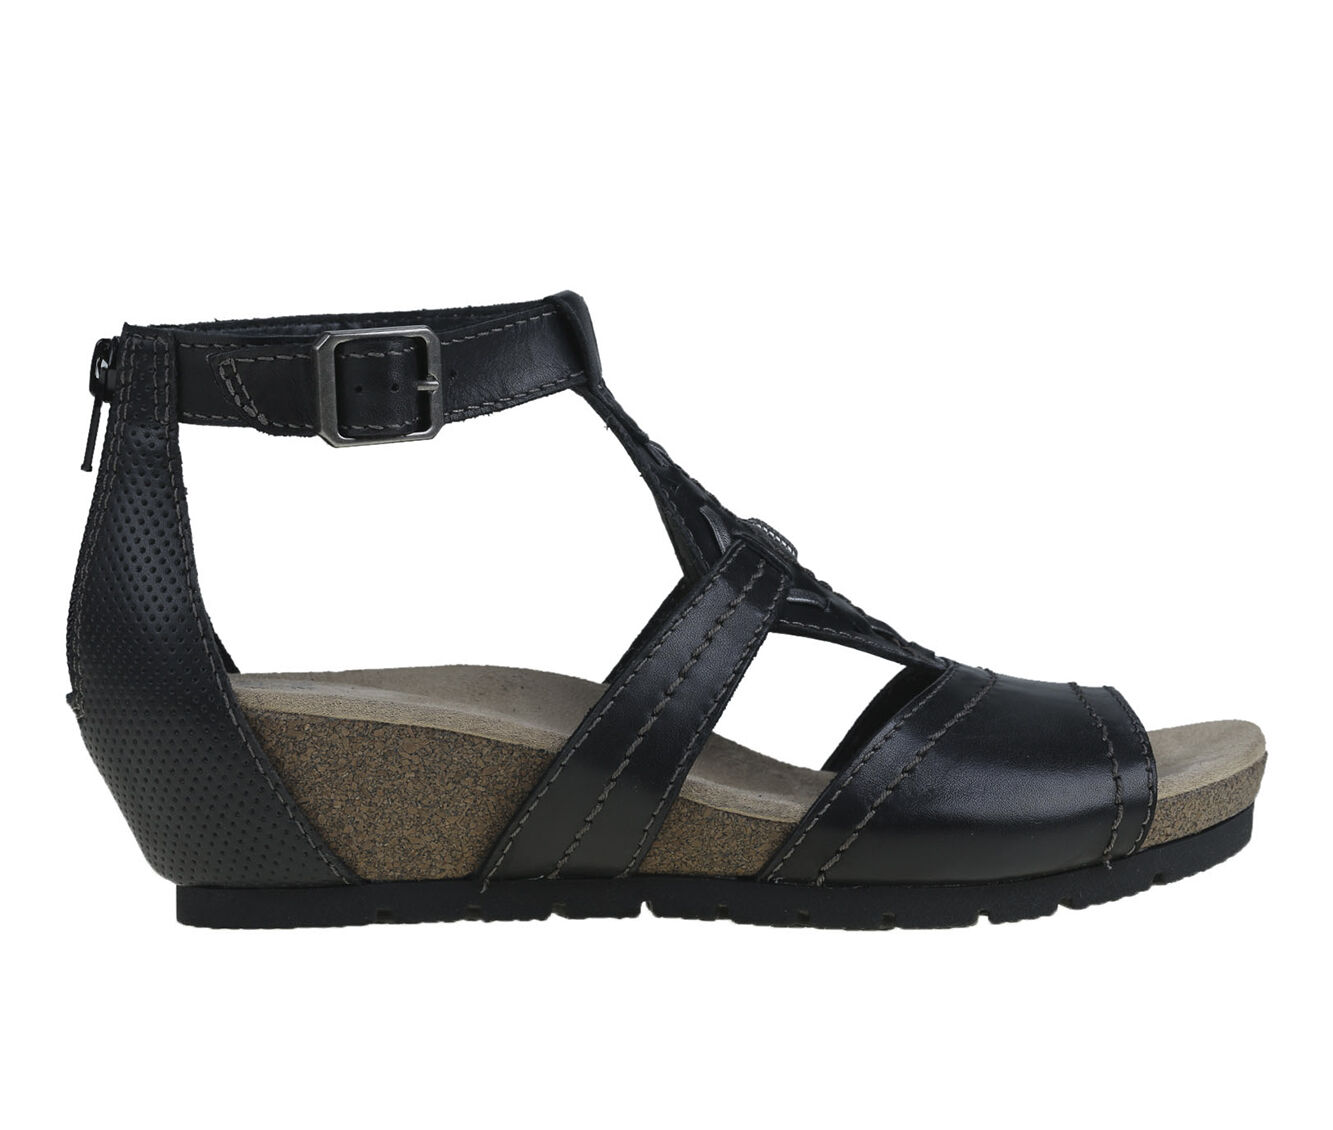 Reliable Women's Earth Origins Kendra Kimber Sandals Black